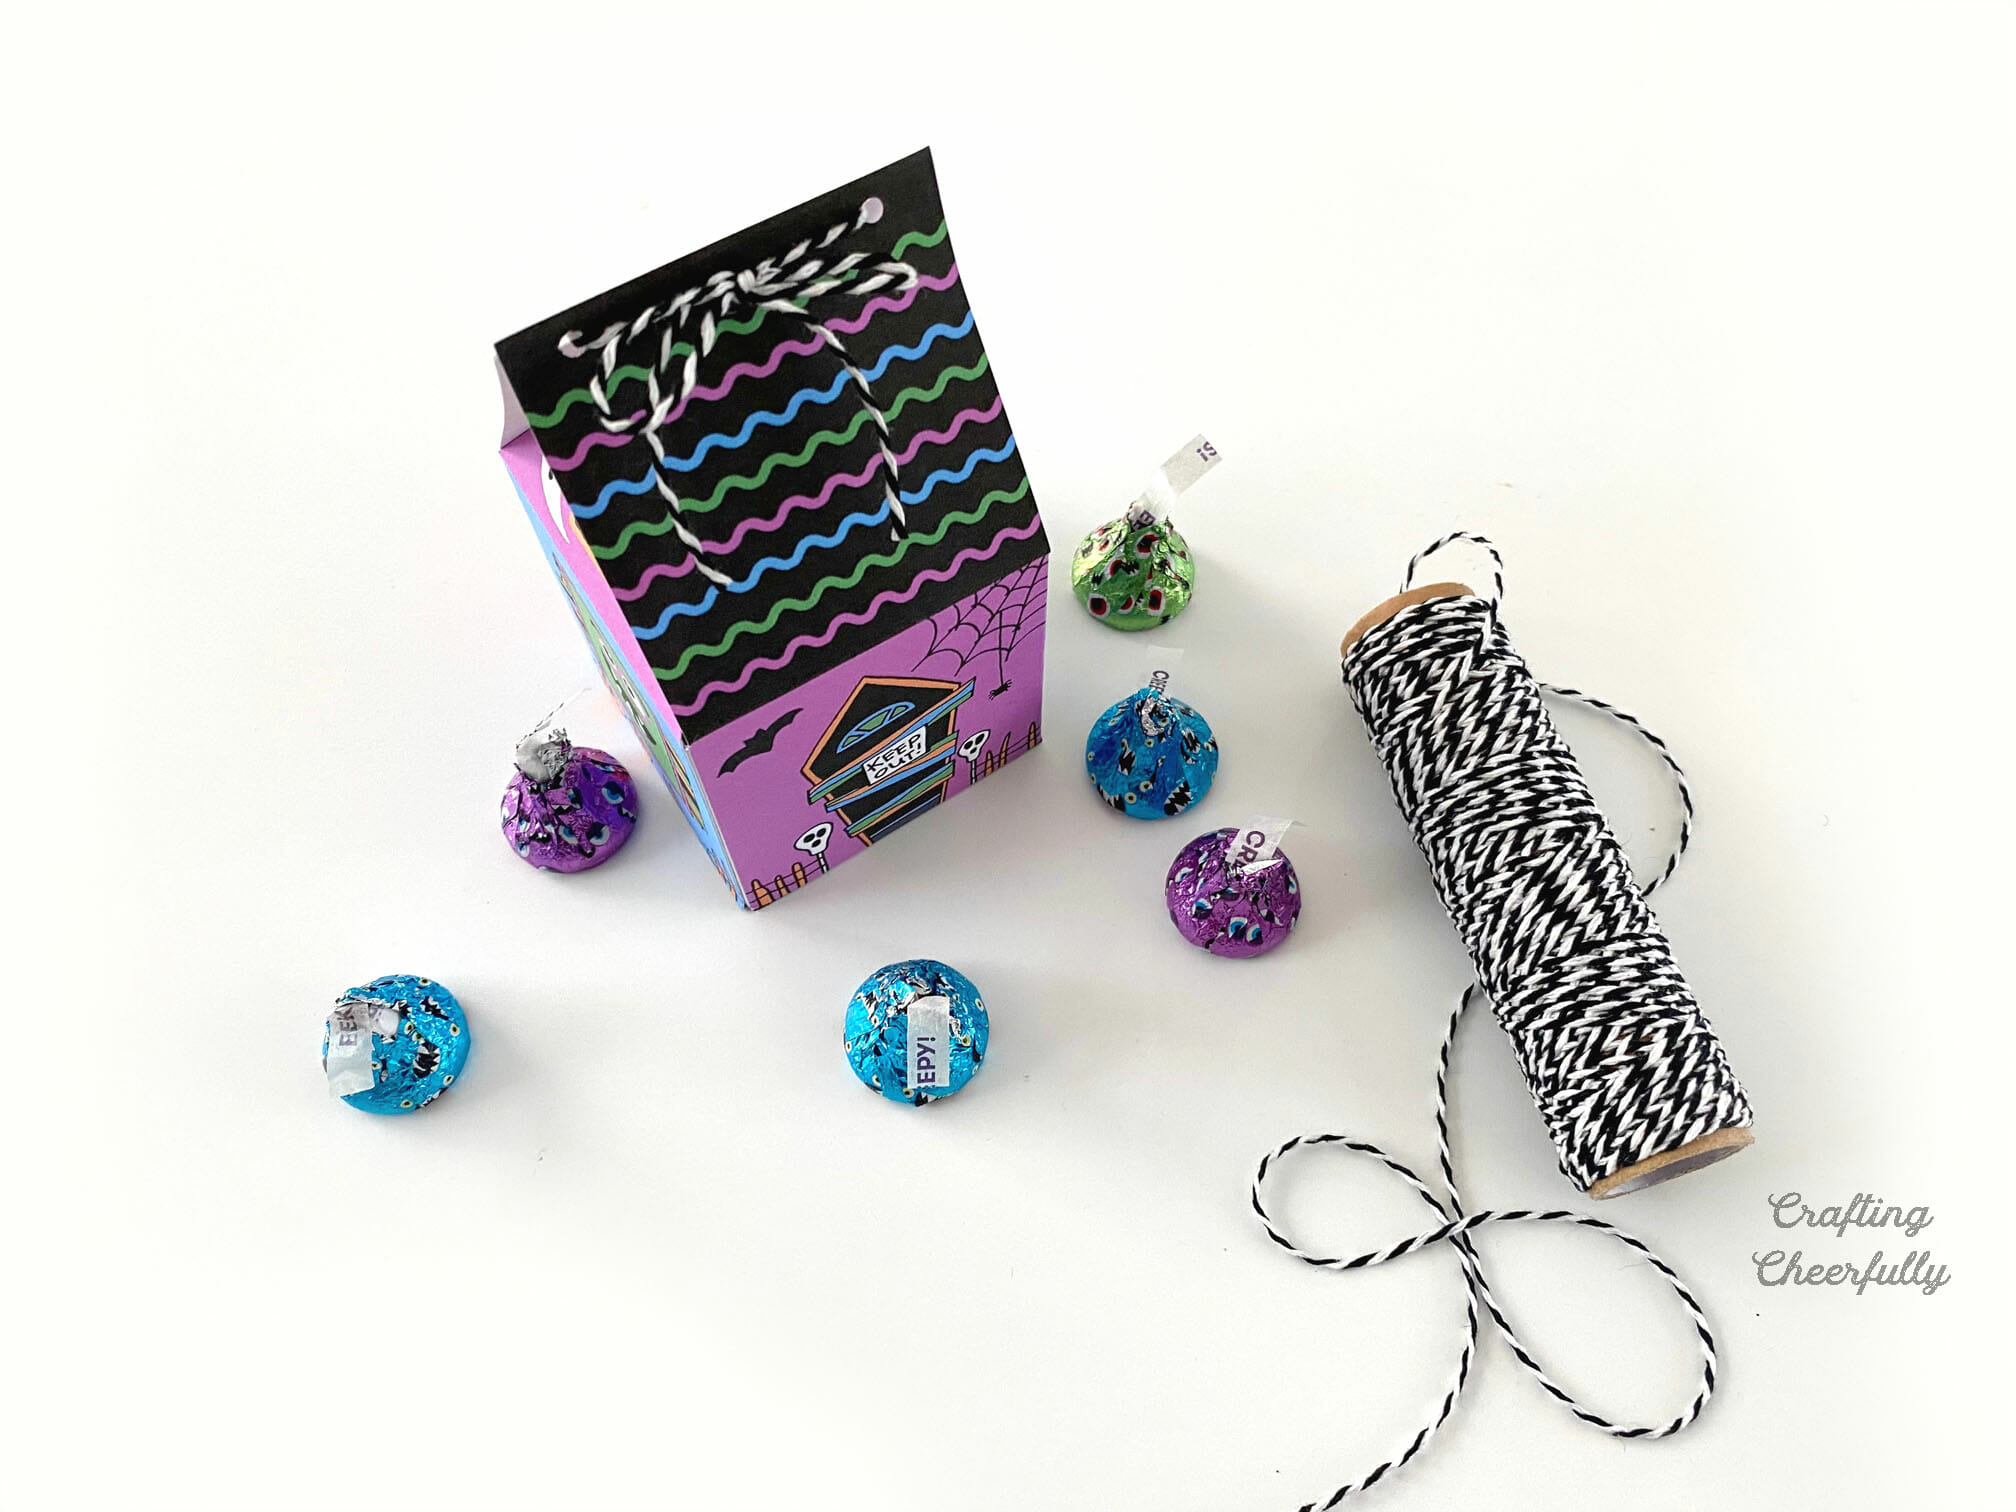 Haunted House Monster treat box sits next to a roll of Baker's twine and candy.